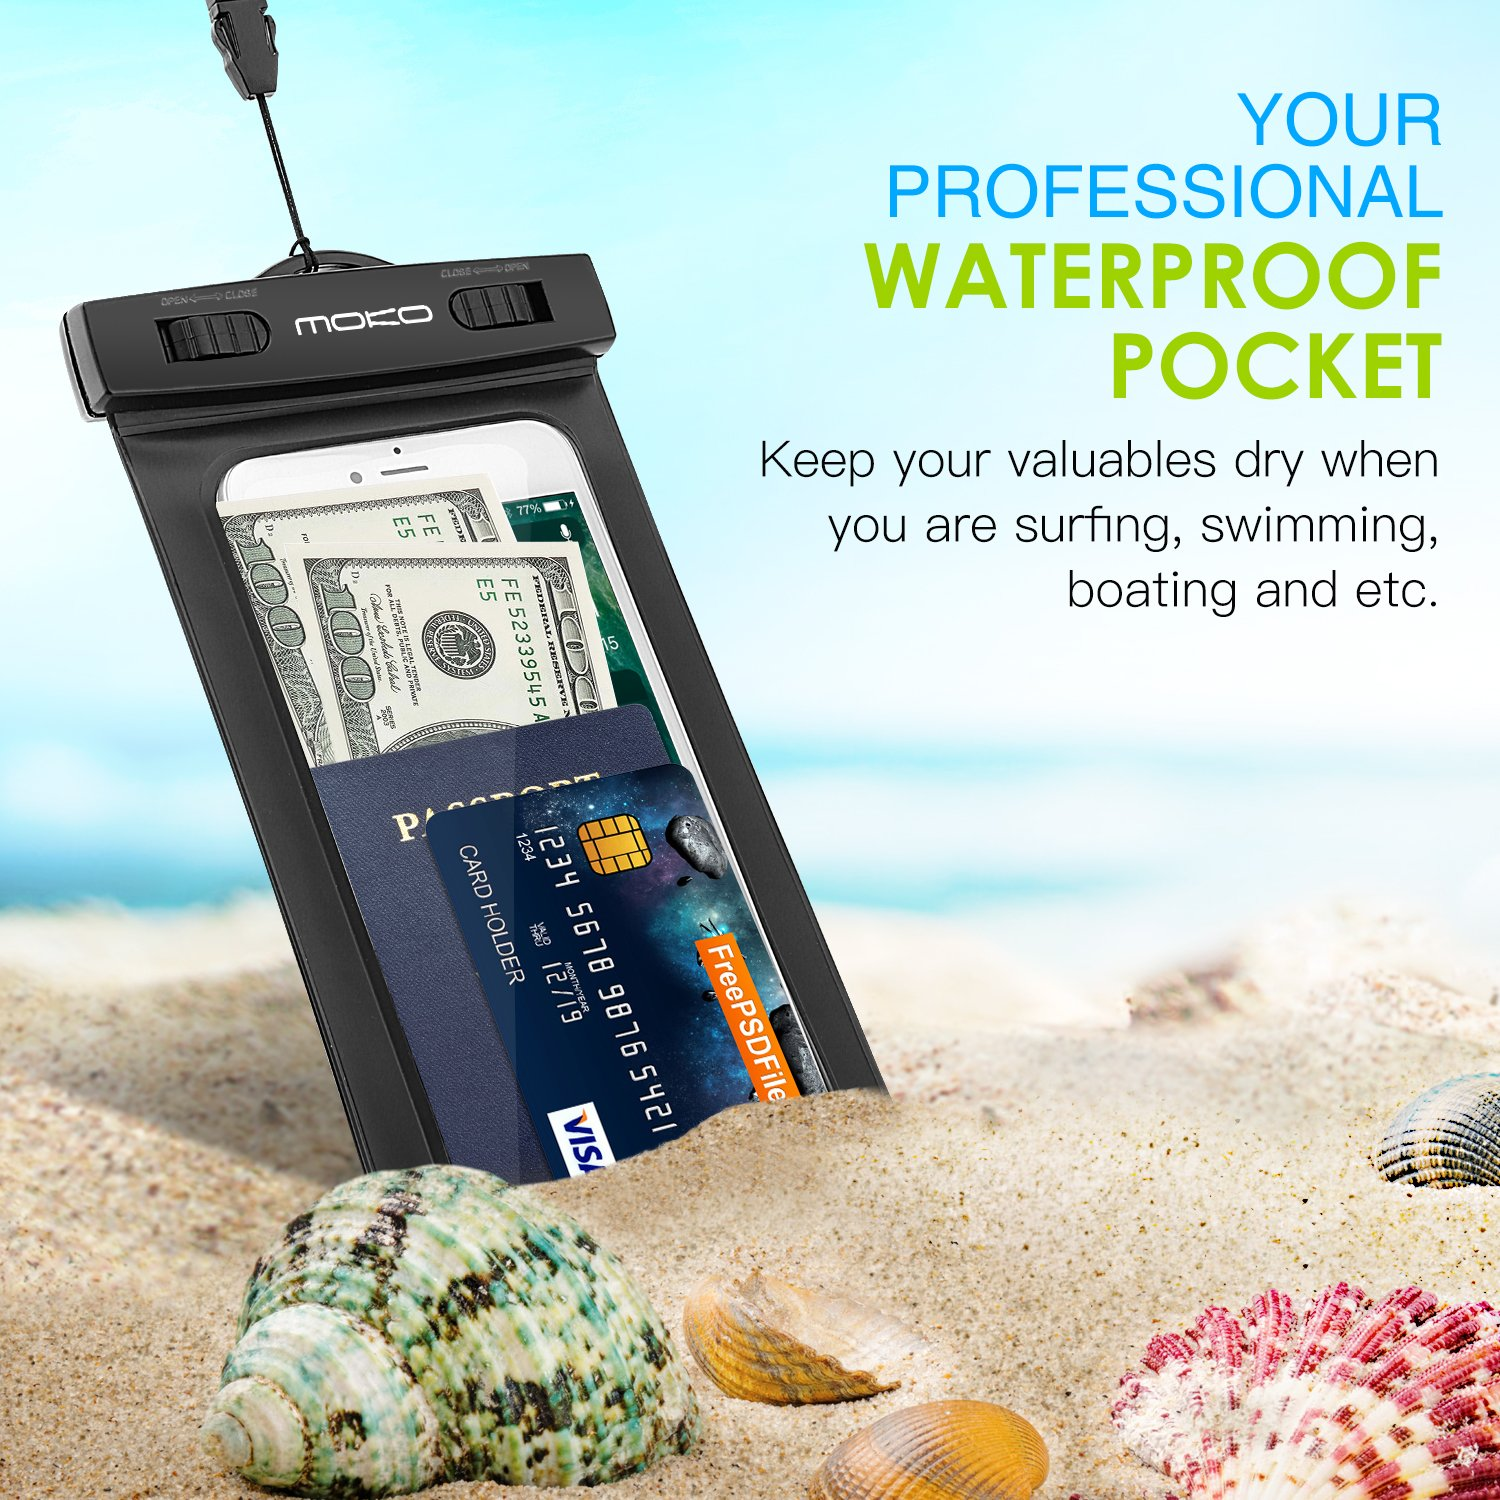 MoKo Waterproof Phone Pouch, Underwater Waterproof Cellphone Case Dry Bag with Lanyard Armband Compatible with iPhone X/Xs/Xr/Xs Max, 8/7/6s Plus, Samsung Galaxy S10/S9/S8 Plus, S10 e, S7 Edge, Black by MoKo (Image #6)